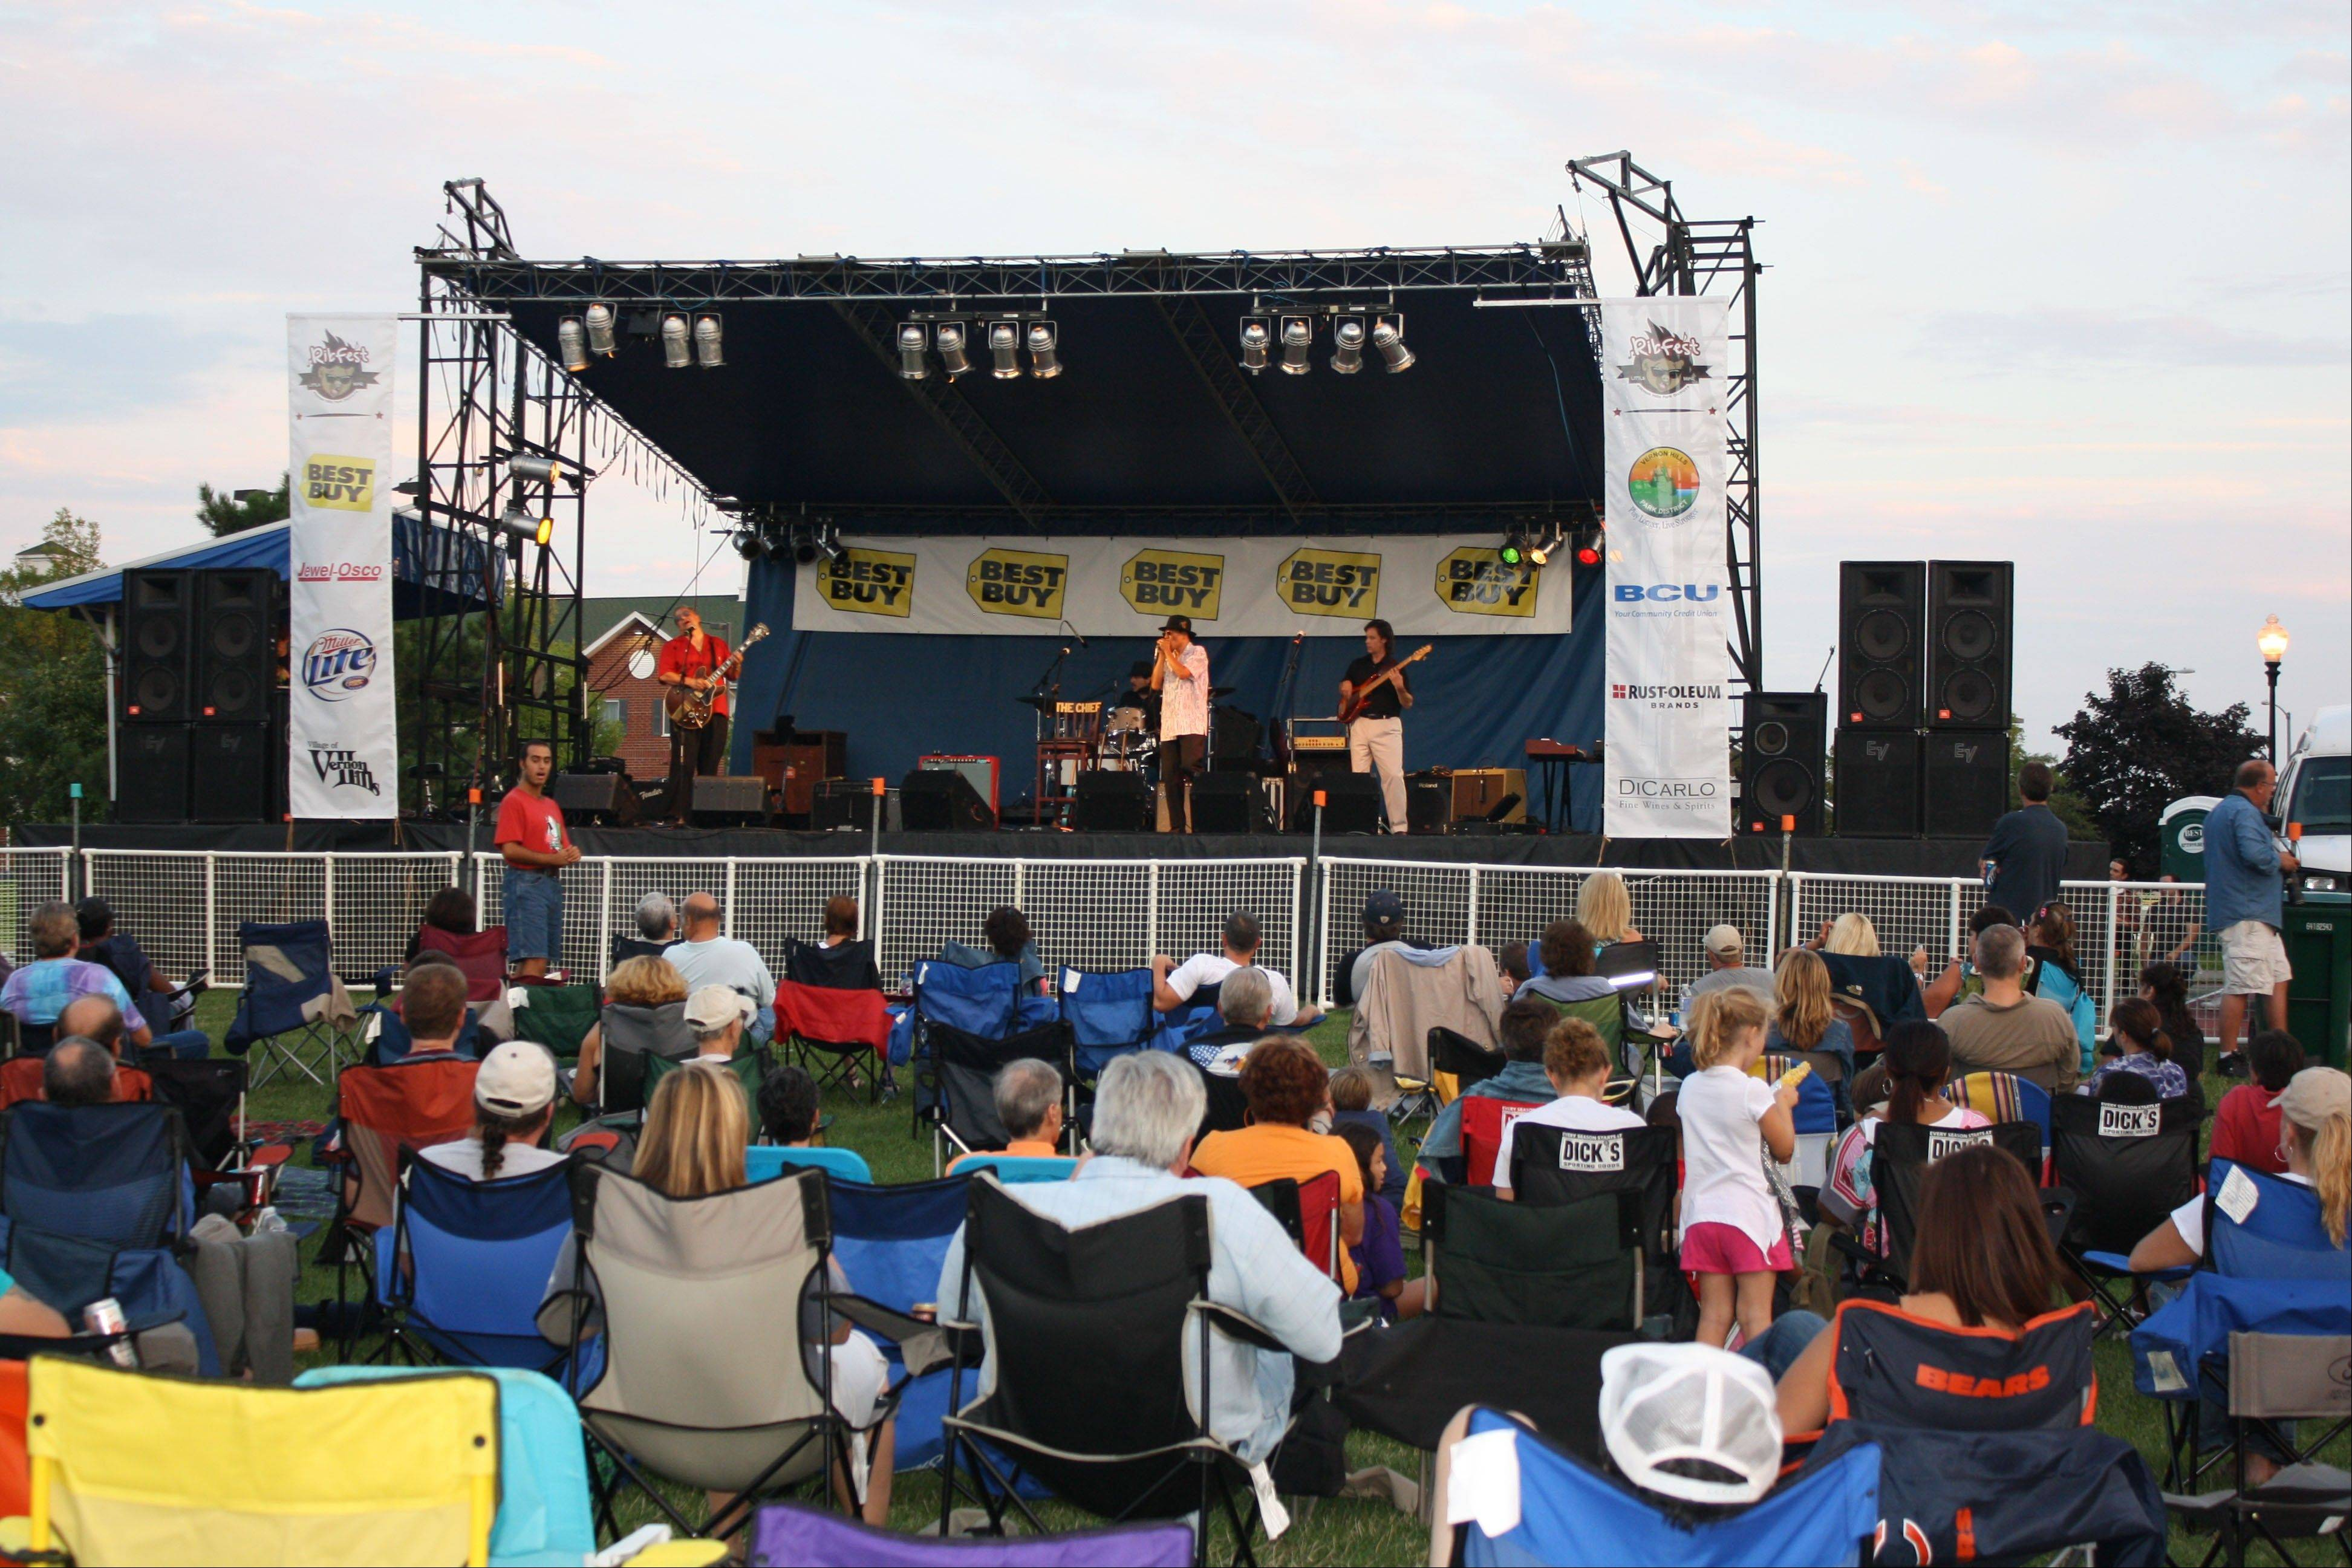 Music and food are the main attractions at the Vernon Hills Park District's Little Bear Ribfest Aug. 24 and 25.